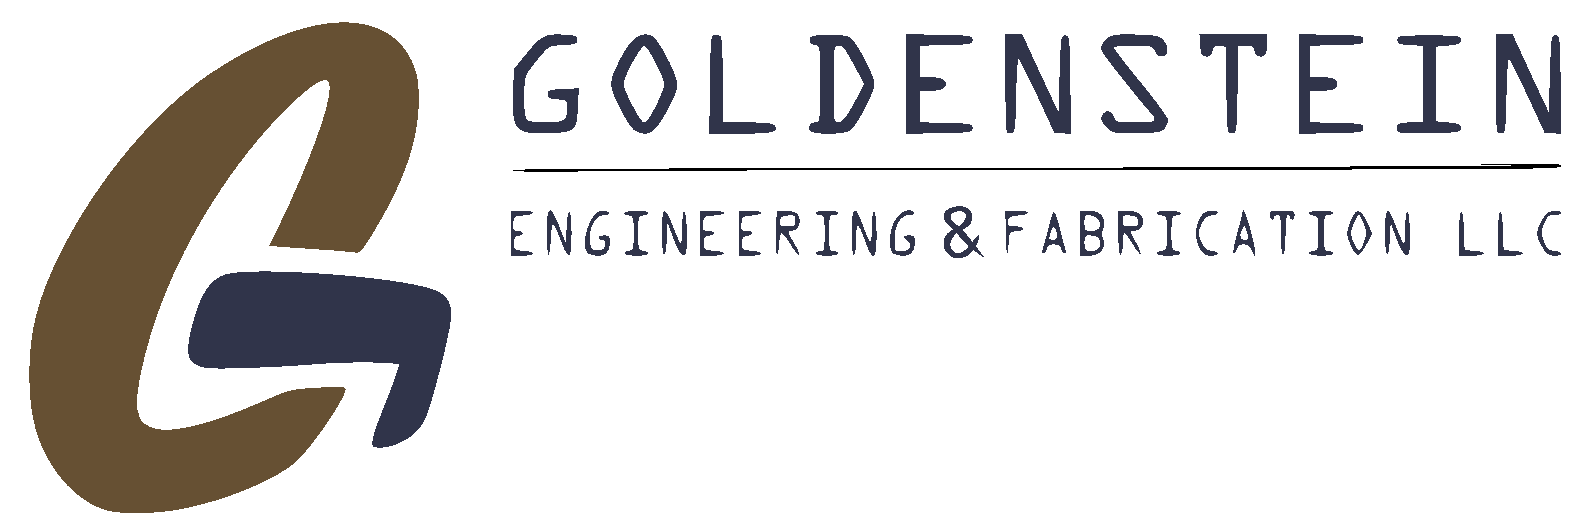 Goldenstien Engineering and Fabrication LLC